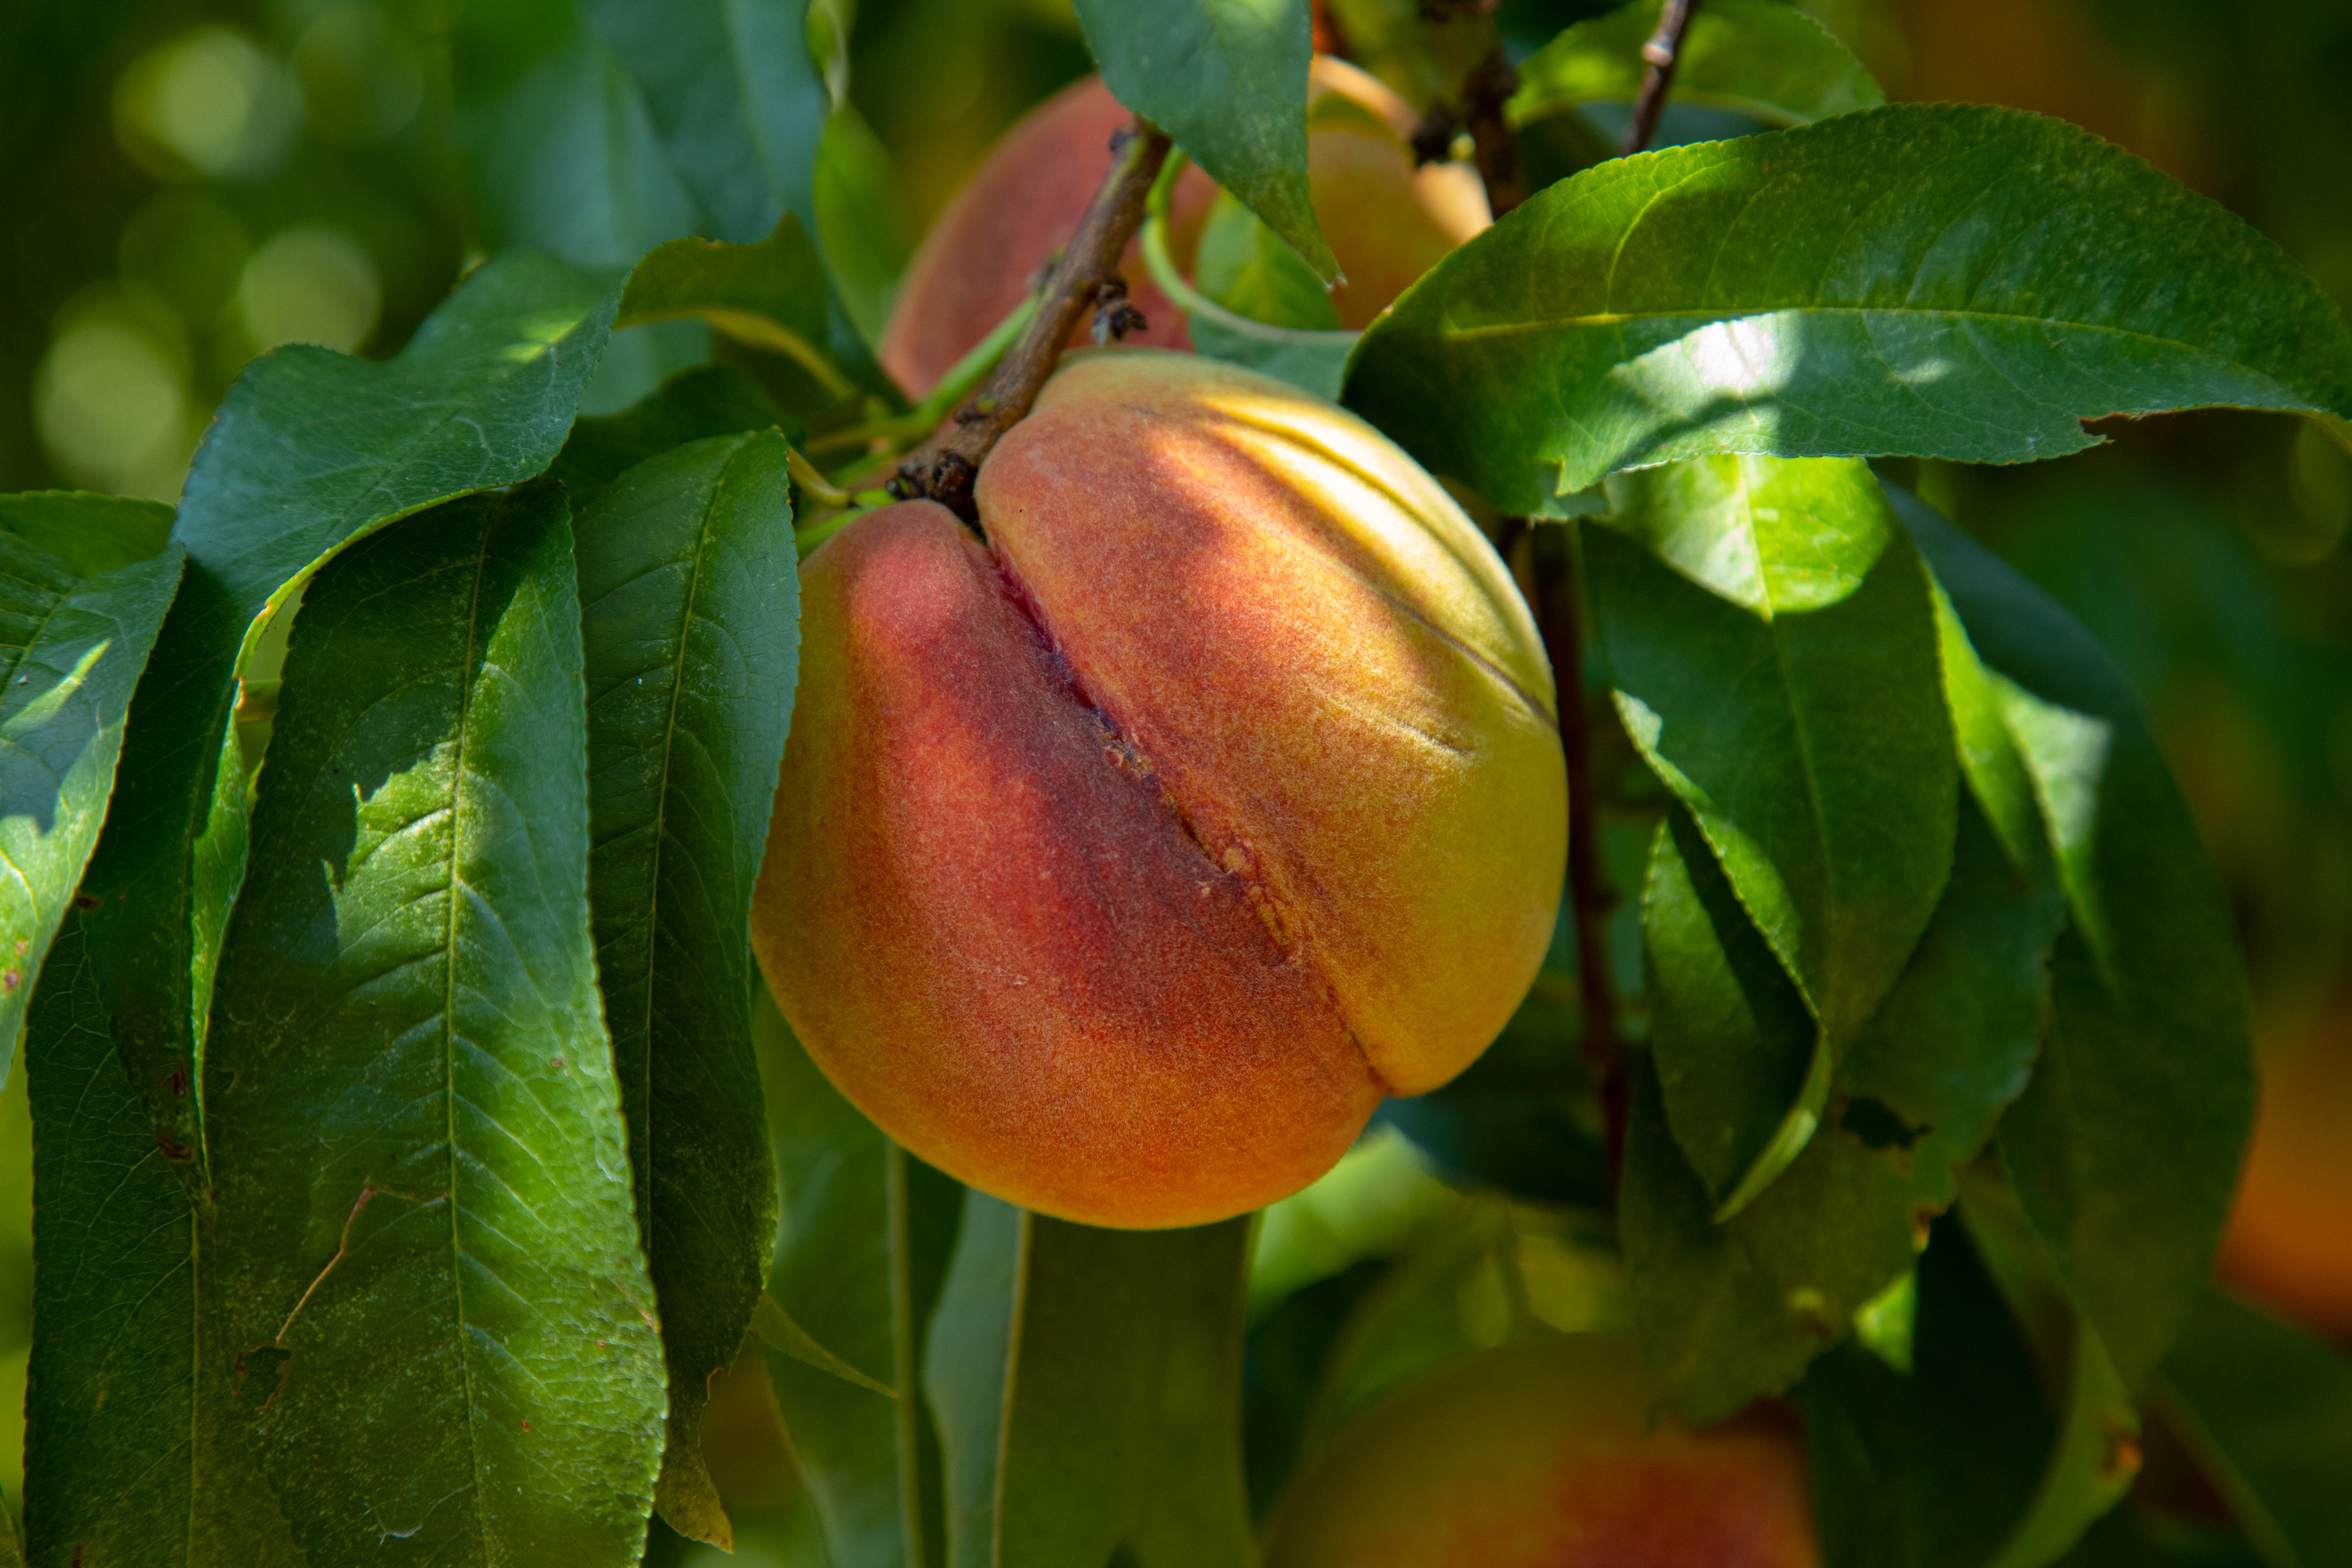 Orange and Yellow Peach hanging from Tree with green leaves surrounding it